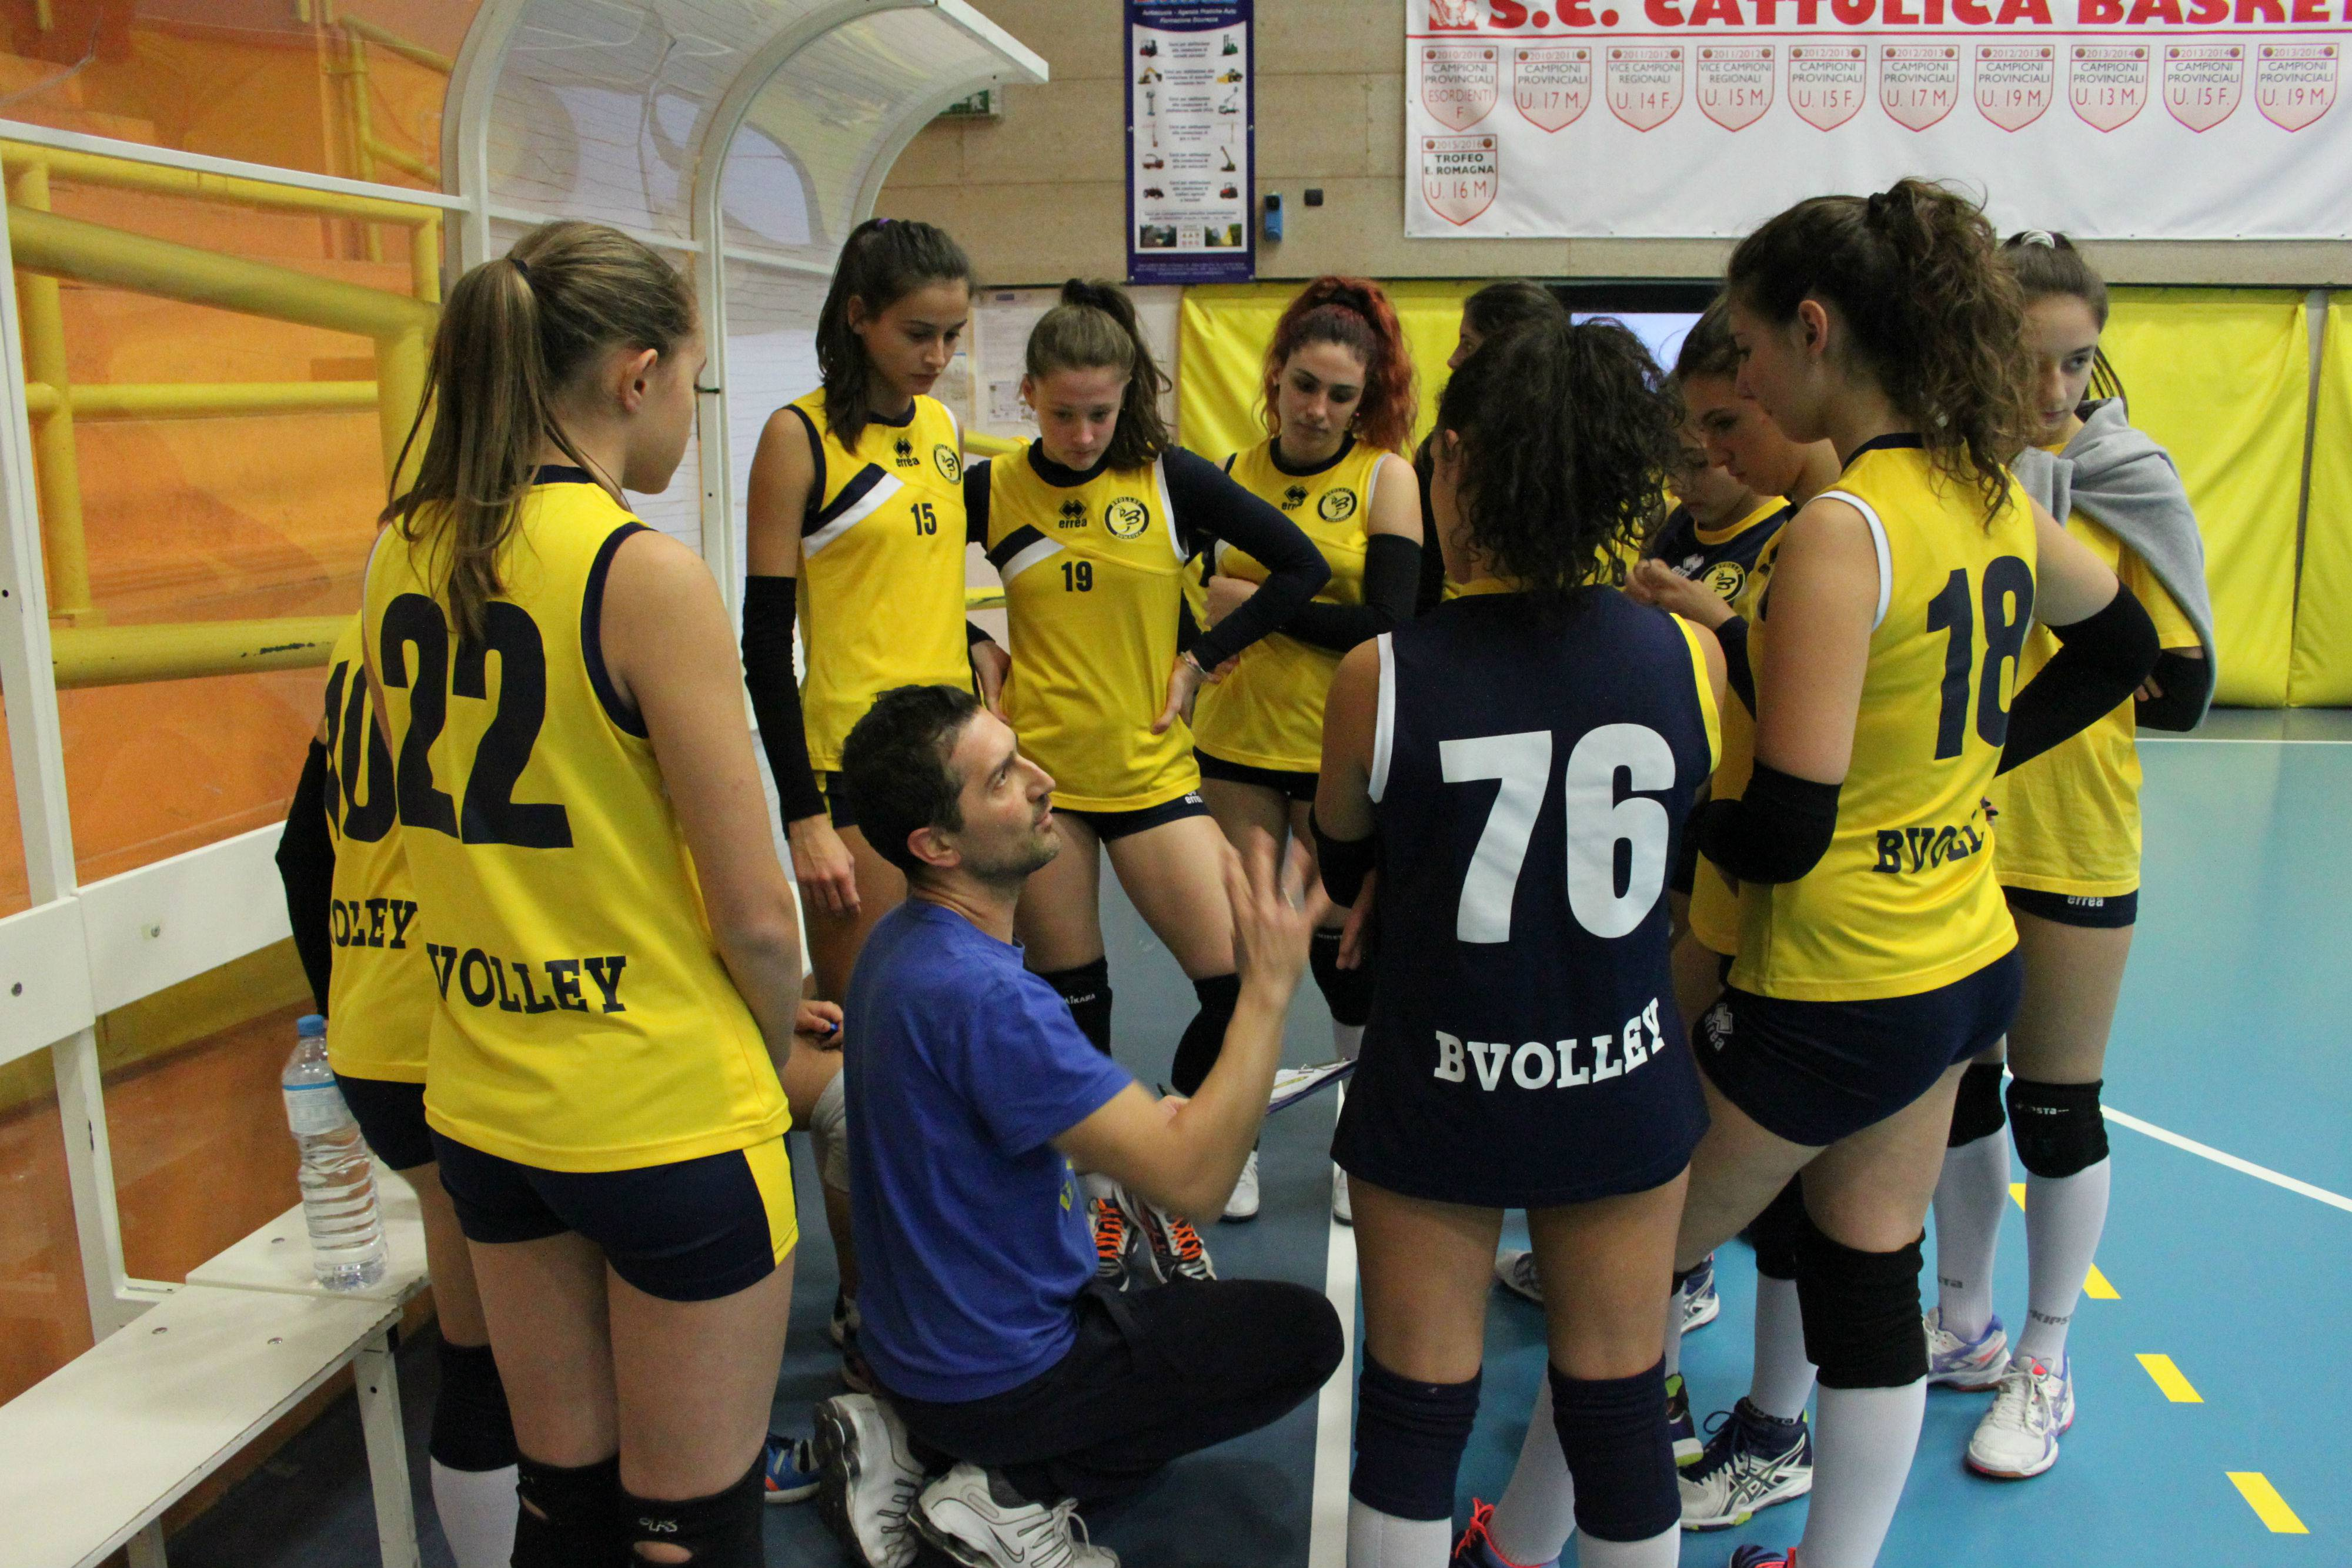 Il BVOLLEY 2002